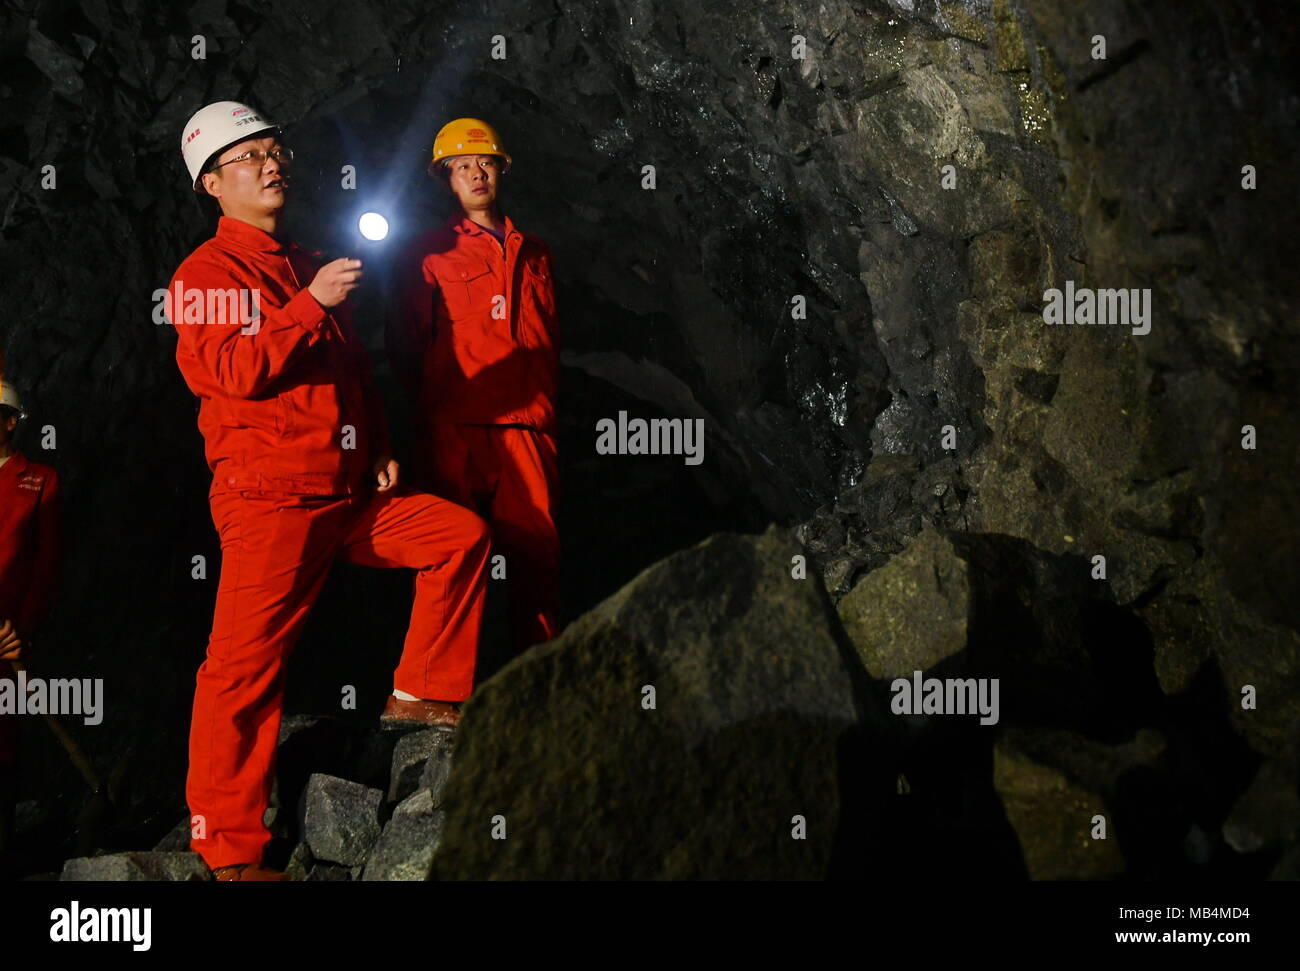 Lhasa, China's Tibet Autonomous Region. 7th Apr, 2018. Workers work at the construction site of the Galashan Tunnel in Lhasa, southwest China's Tibet Autonomous Region, April 7, 2018. The 4,373-km-long tunnel, about 3,600 meters of altitude, is part of the Lhasa to Nyingchi railway. Credit: Zhang Rufeng/Xinhua/Alamy Live News - Stock Image